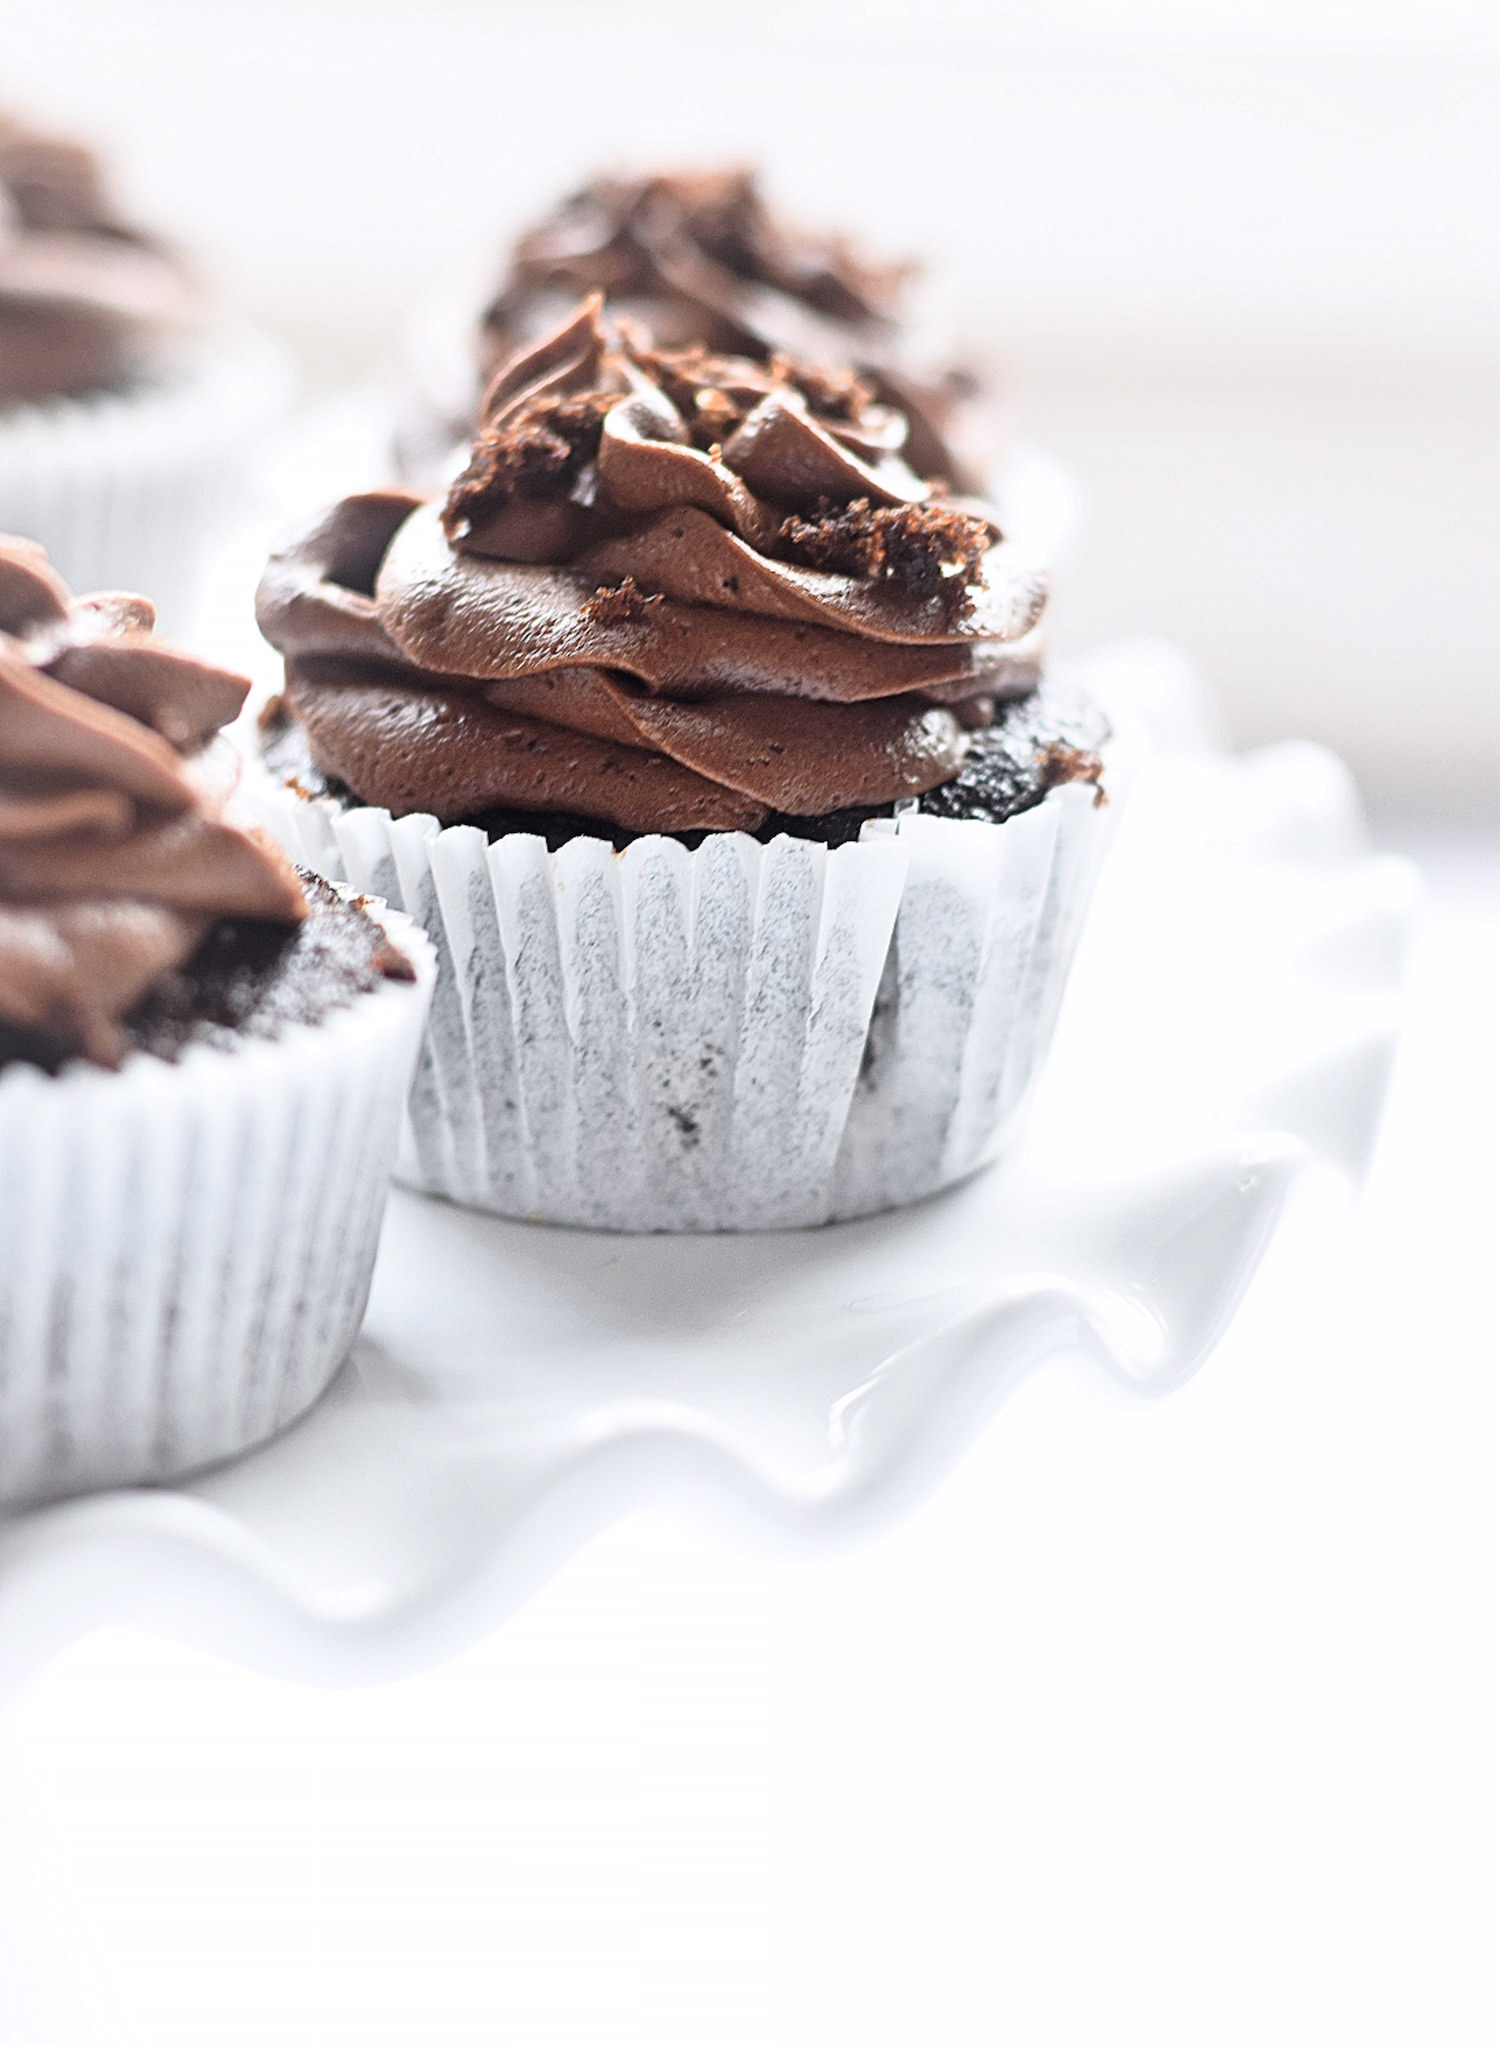 These Amazing Chocolate Cupcakes with Chocolate Buttercream Frosting are soft, tender, perfectly sweet, and full of rich chocolate flavor. | TrufflesandTrends.com